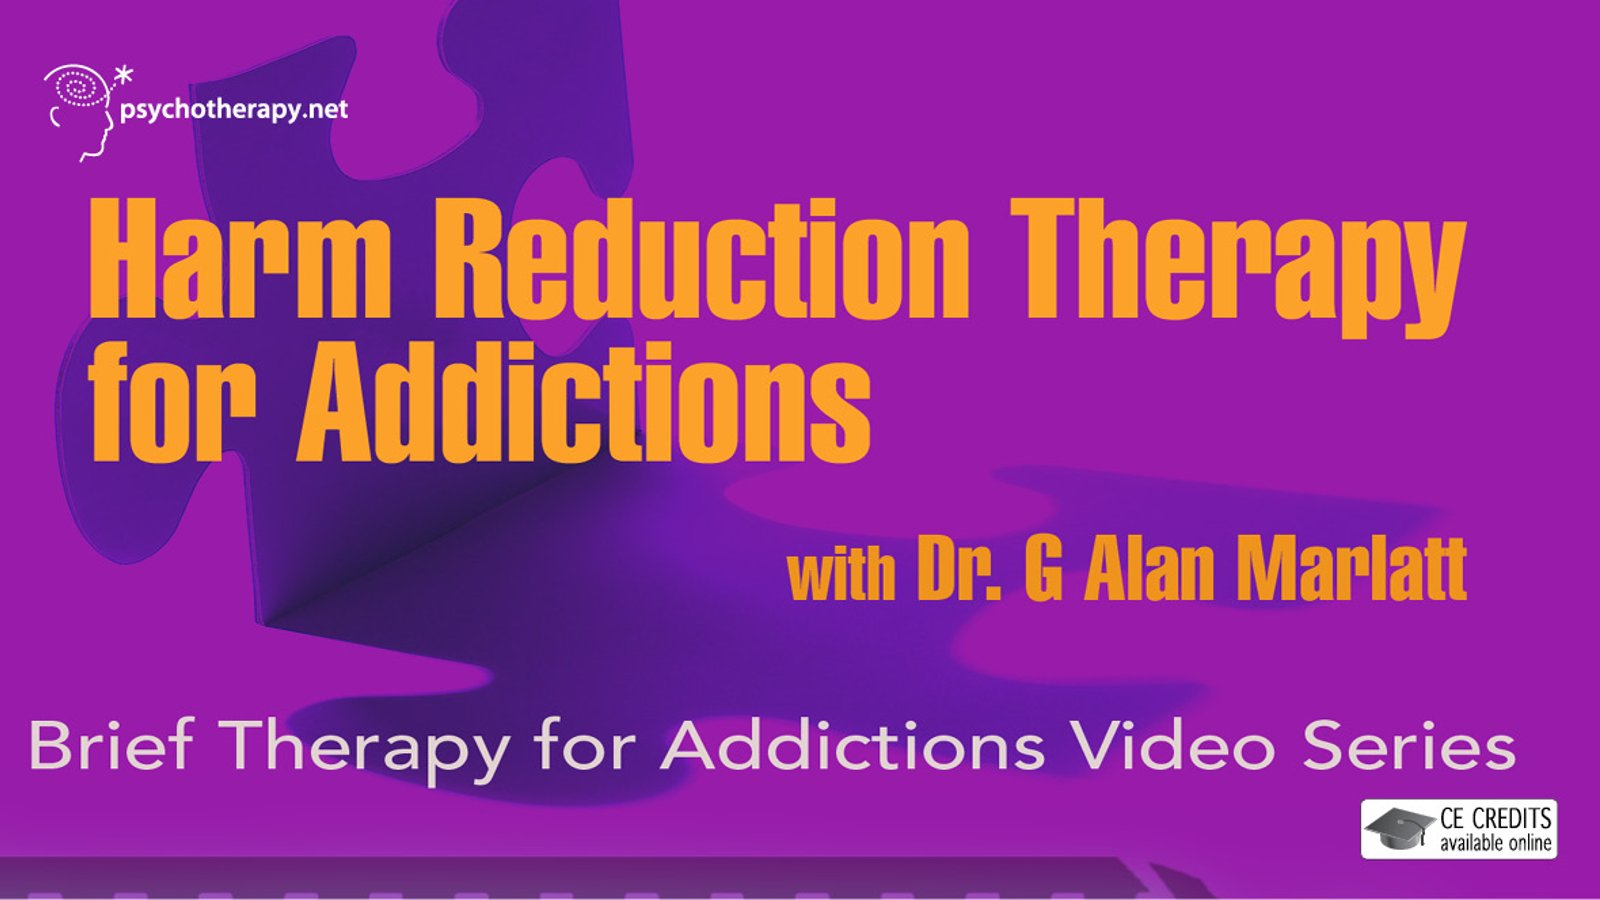 Harm Reduction Therapy for Addictions - With G. Alan Marlatt